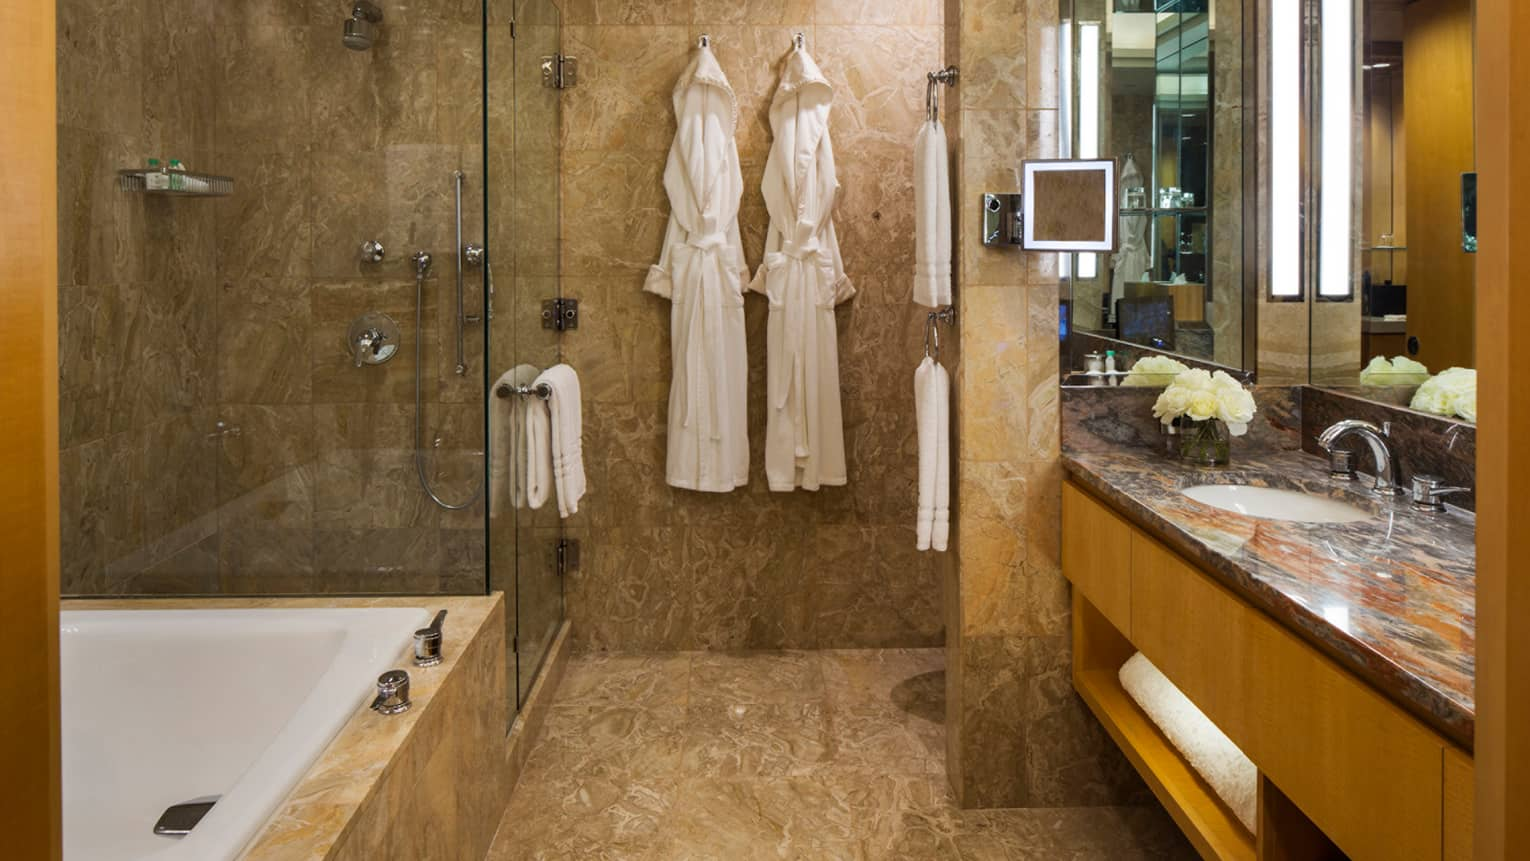 Gotham Suite bathroom, two white robes hanging on wall by walk-in glass shower, tub